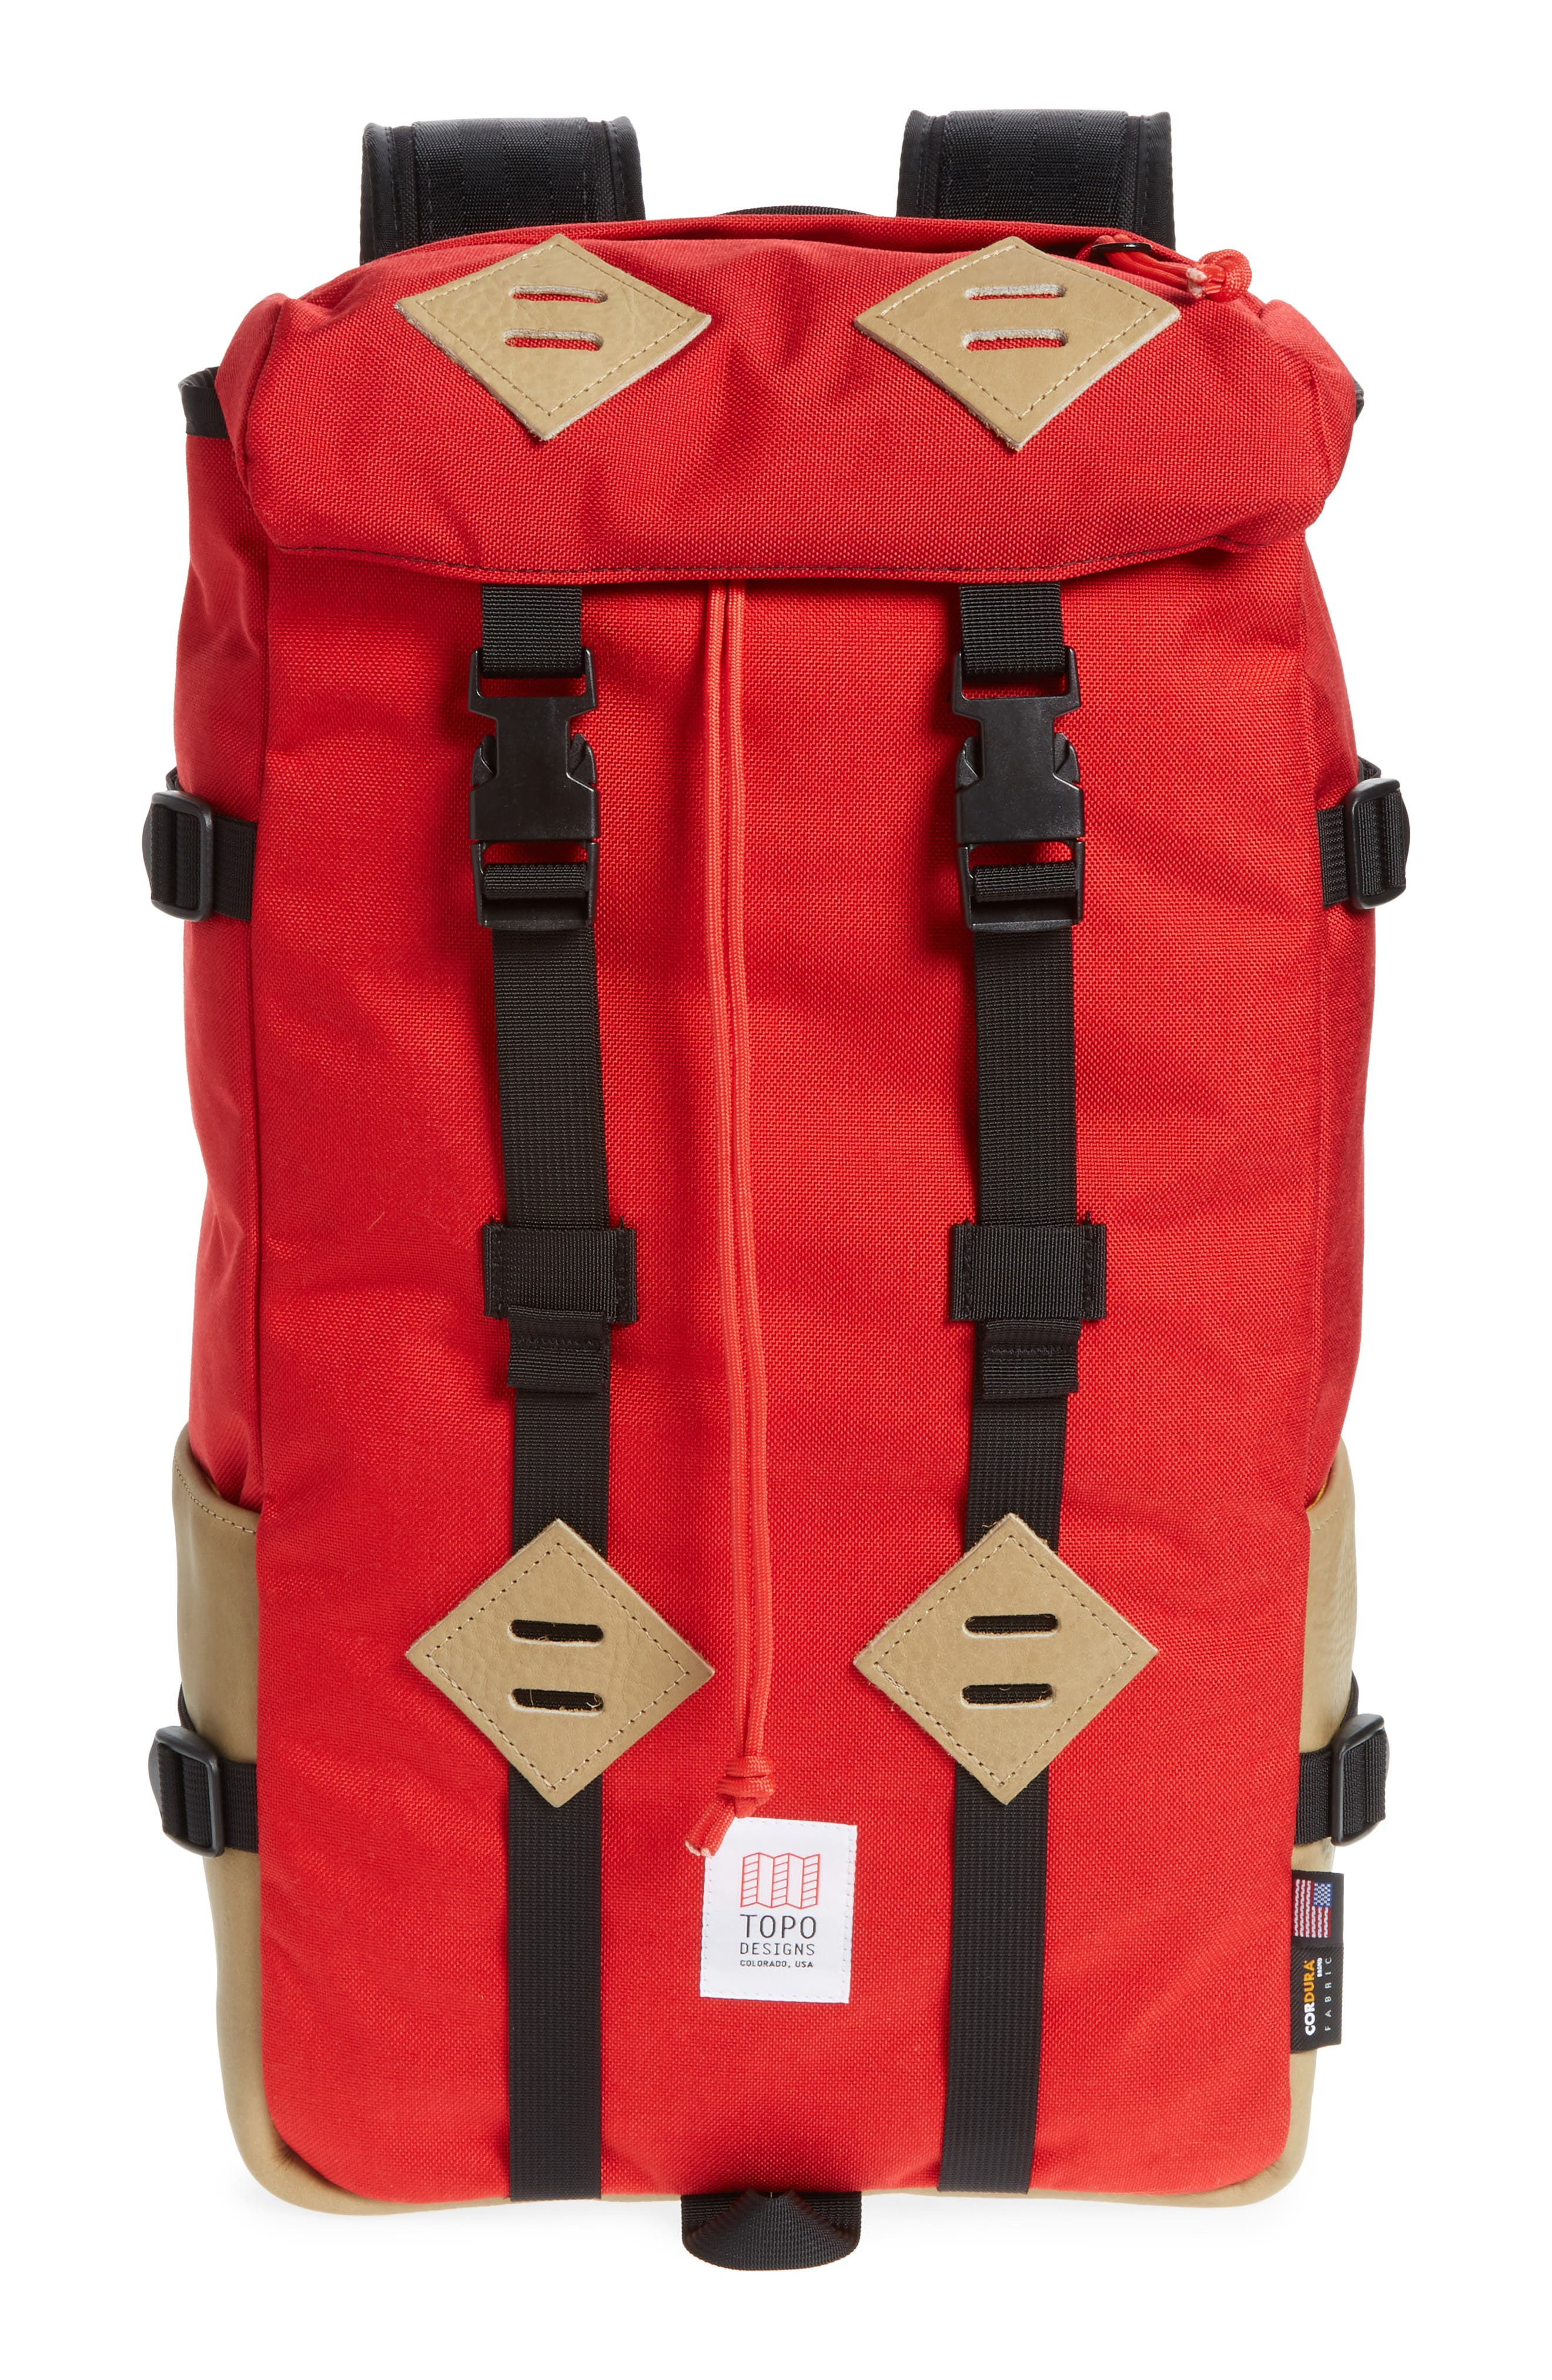 'Klettersack' Backpack,                             Main thumbnail 1, color,                             RED/KHAKI LEATHER